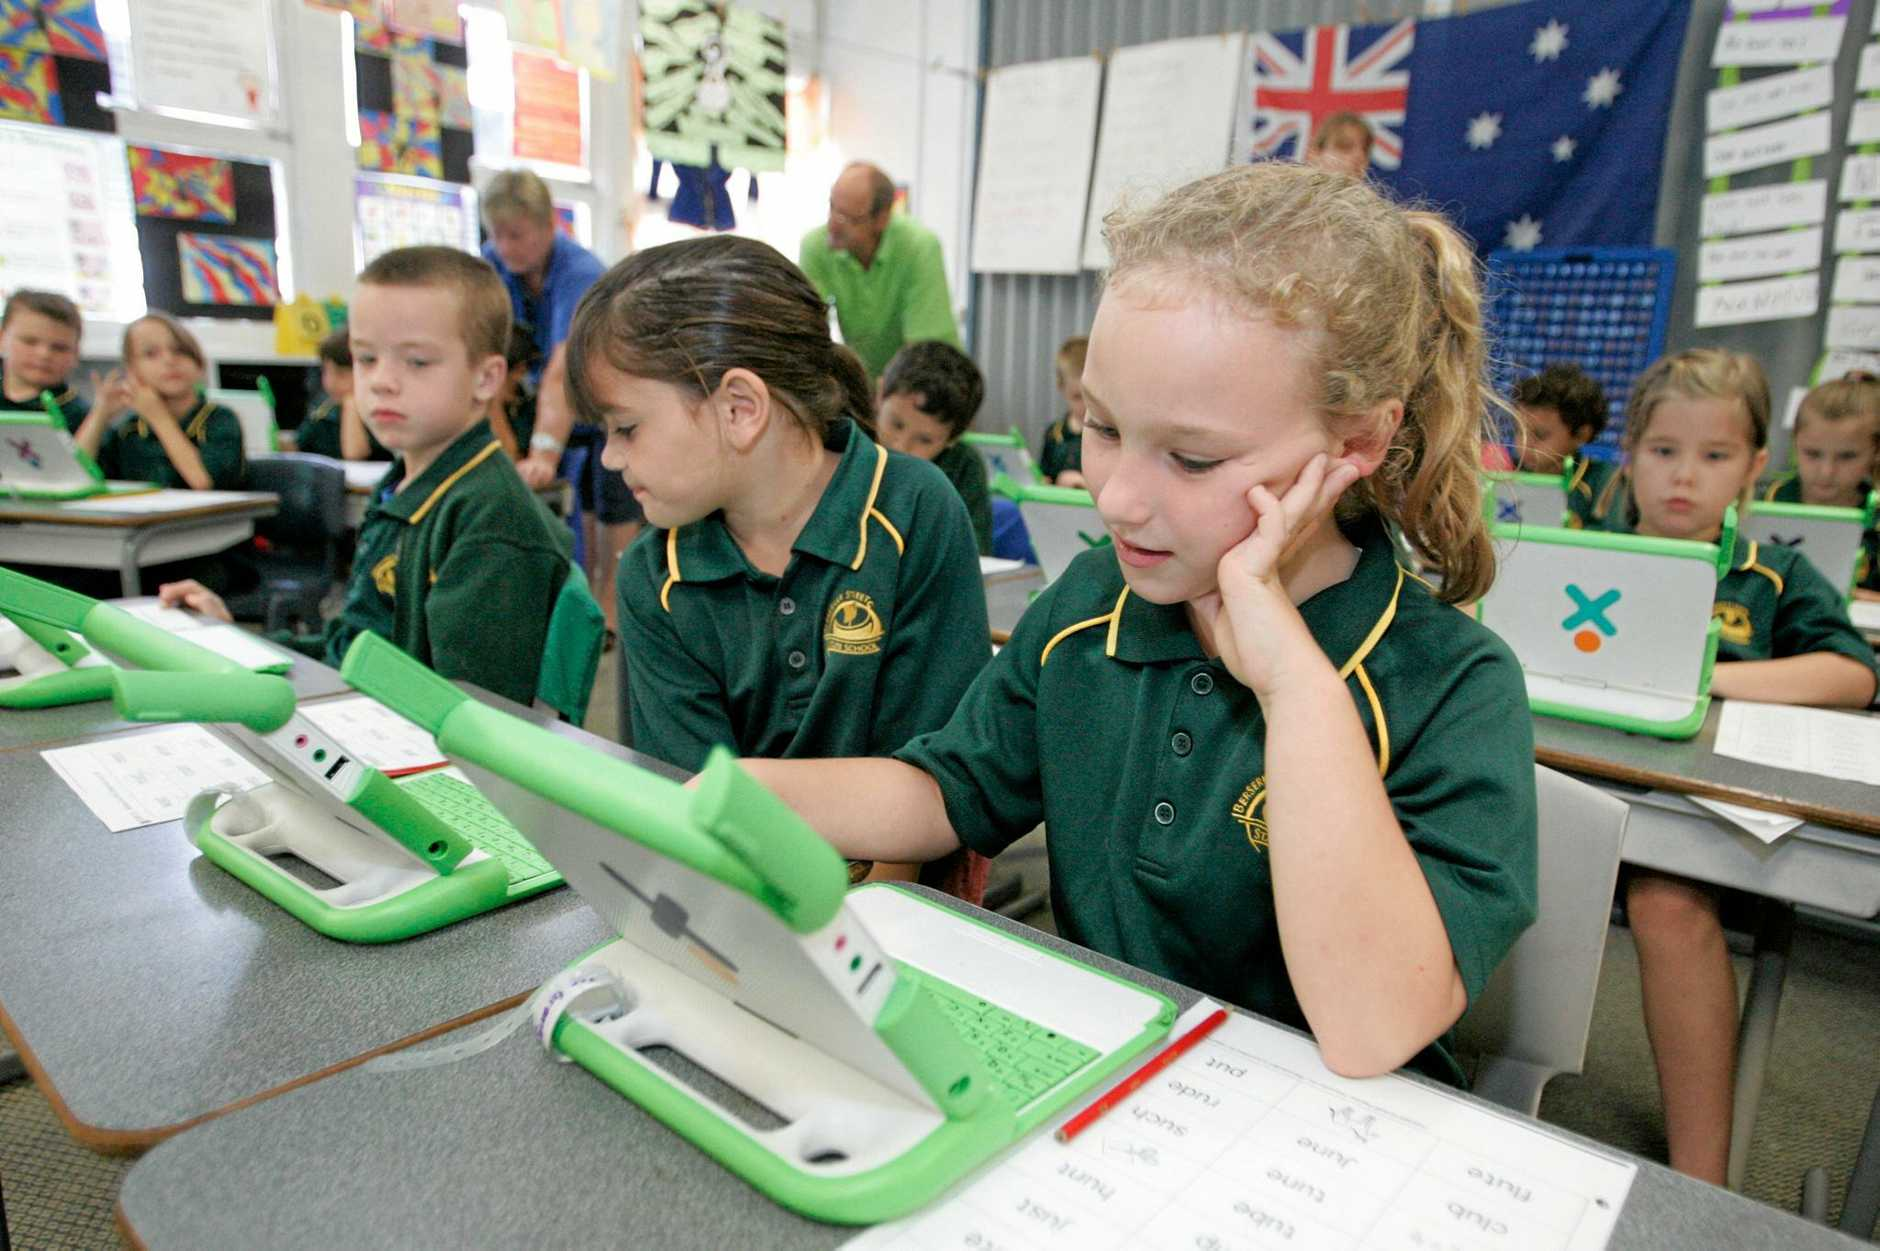 Berserker State School student Zoe Granger using one of the school's XO computers which have been provided to every student in the school.   Photo: Chris Ison / The Morning Bulletin